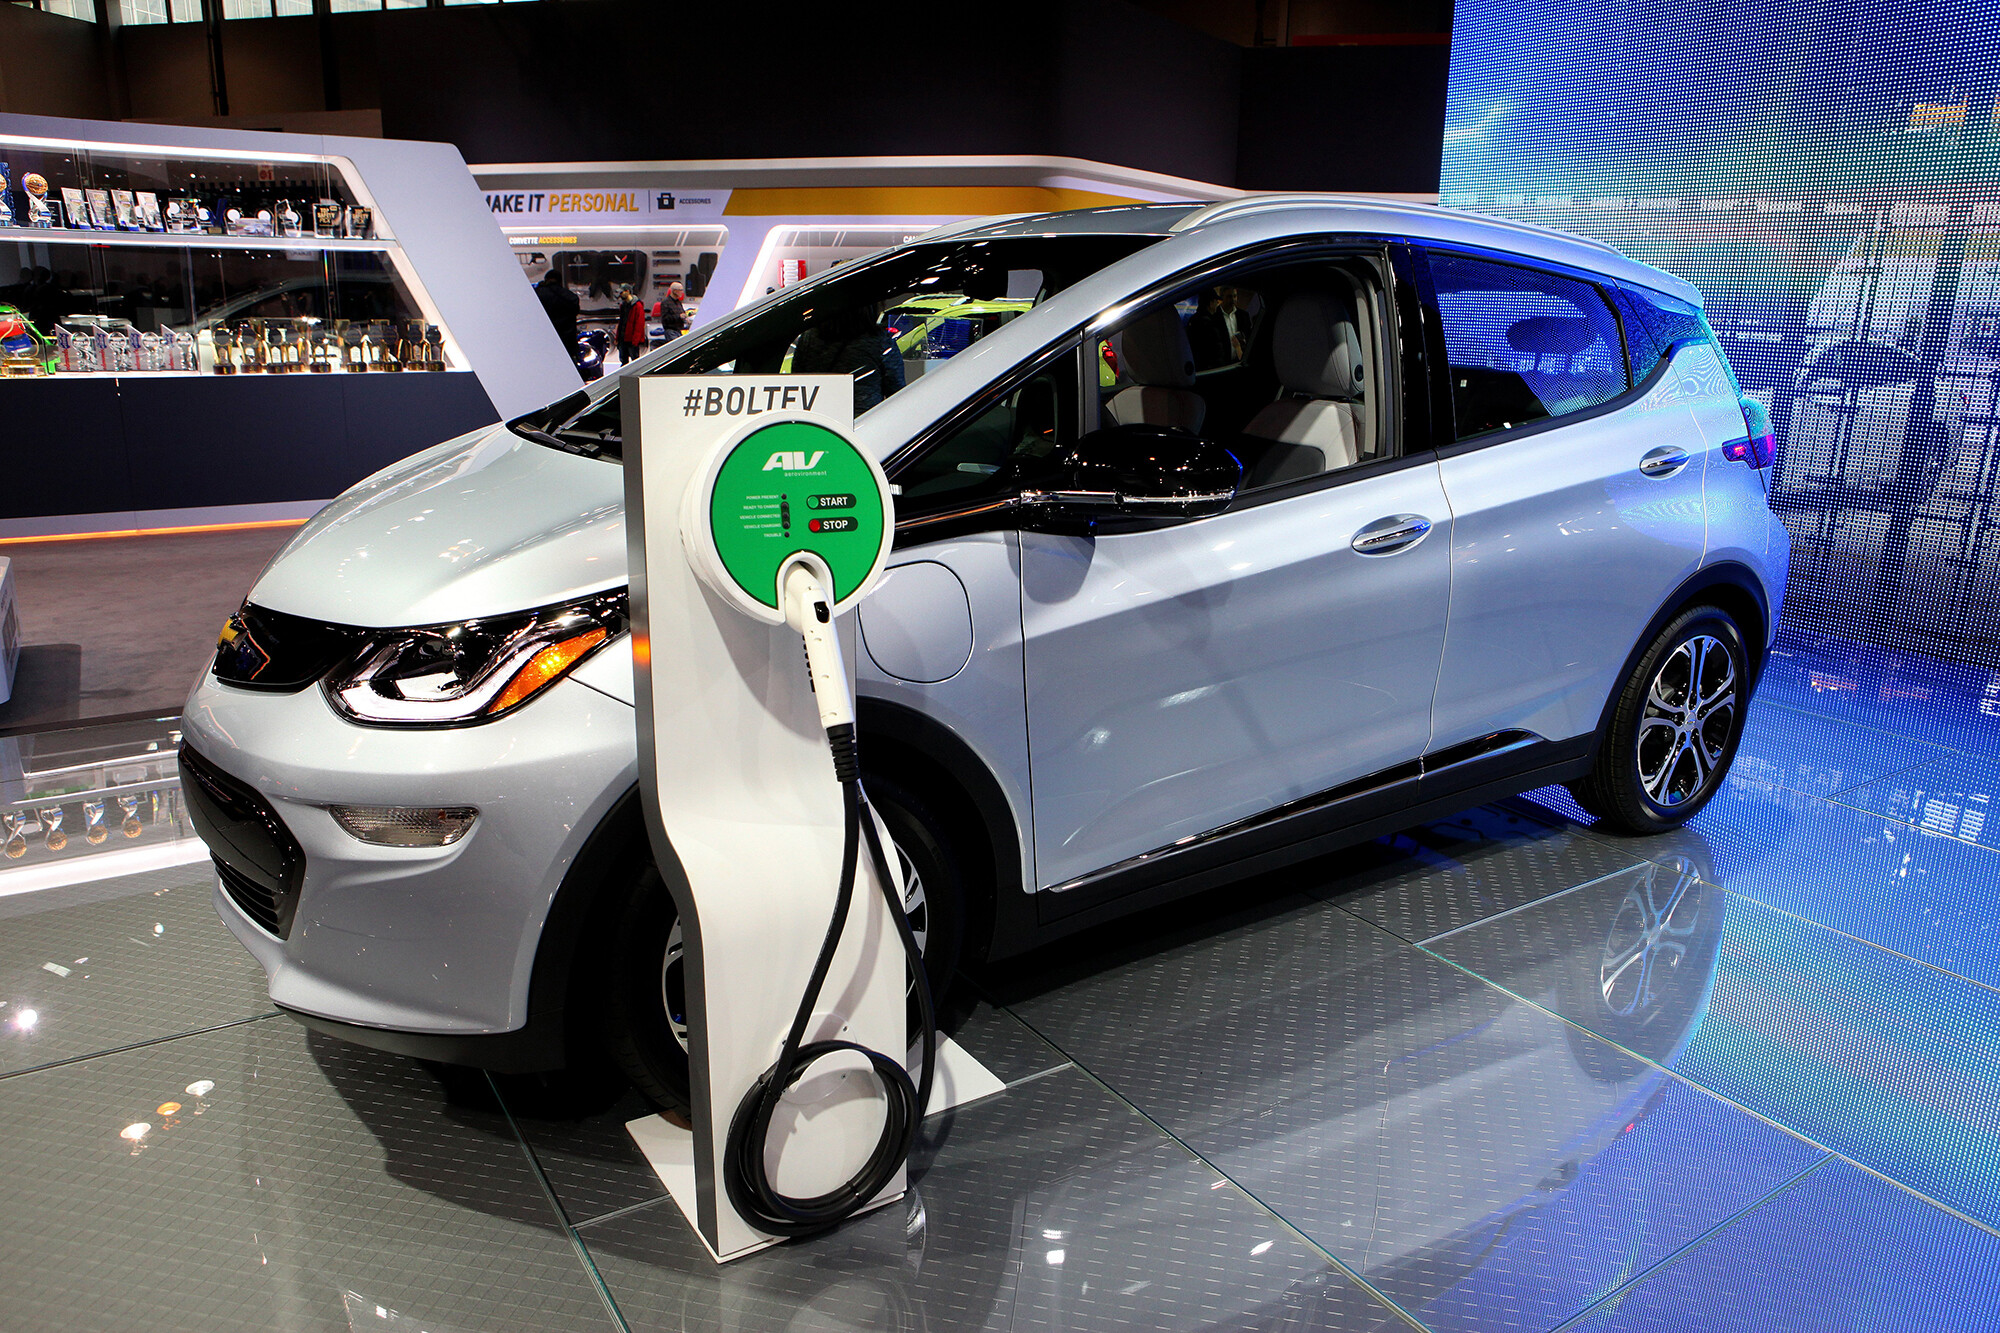 <i>Raymond Boyd/Getty Images</i><br/>General Motors announces it will begin replacing damaged and fire-prone battery cells on some of its recalled Chevrolet Bolt electric vehicles in mid-October